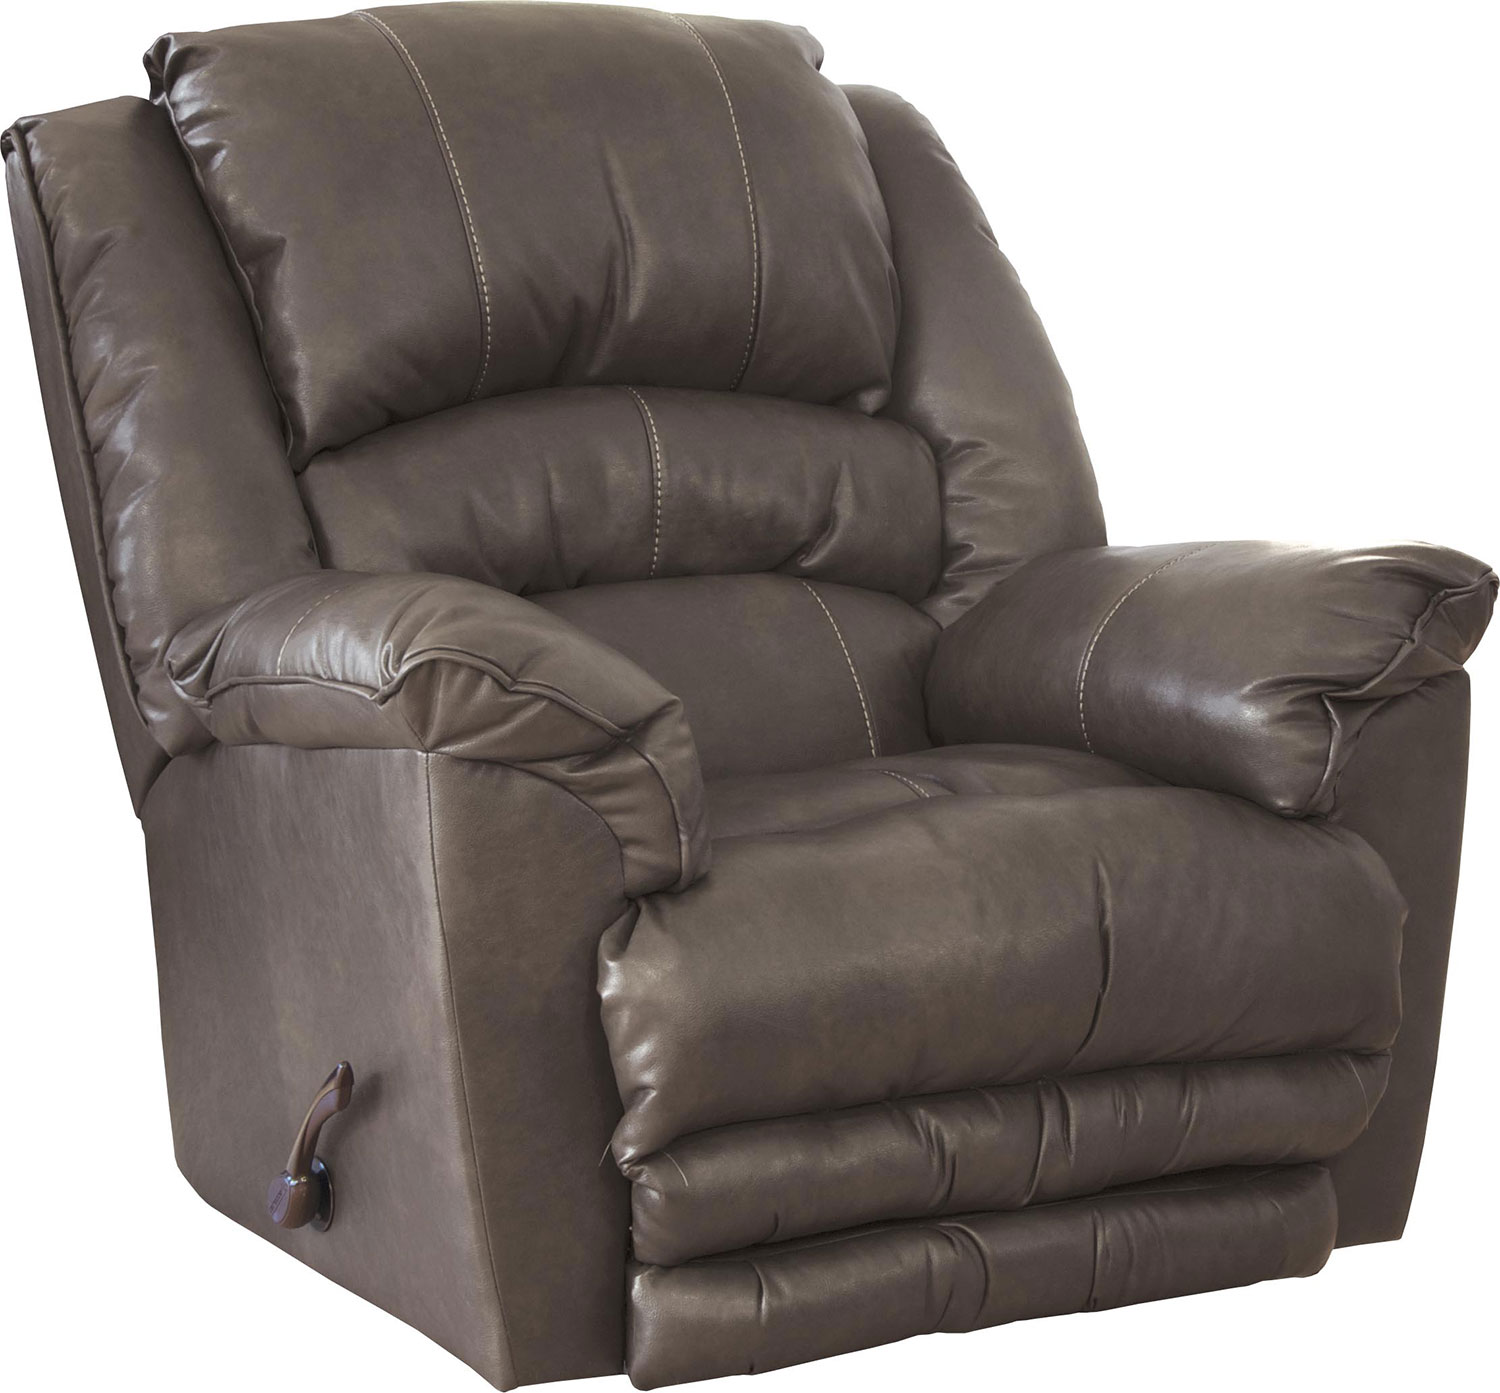 CatNapper Filmore Bonded Leather Recliner Chair - Smoke